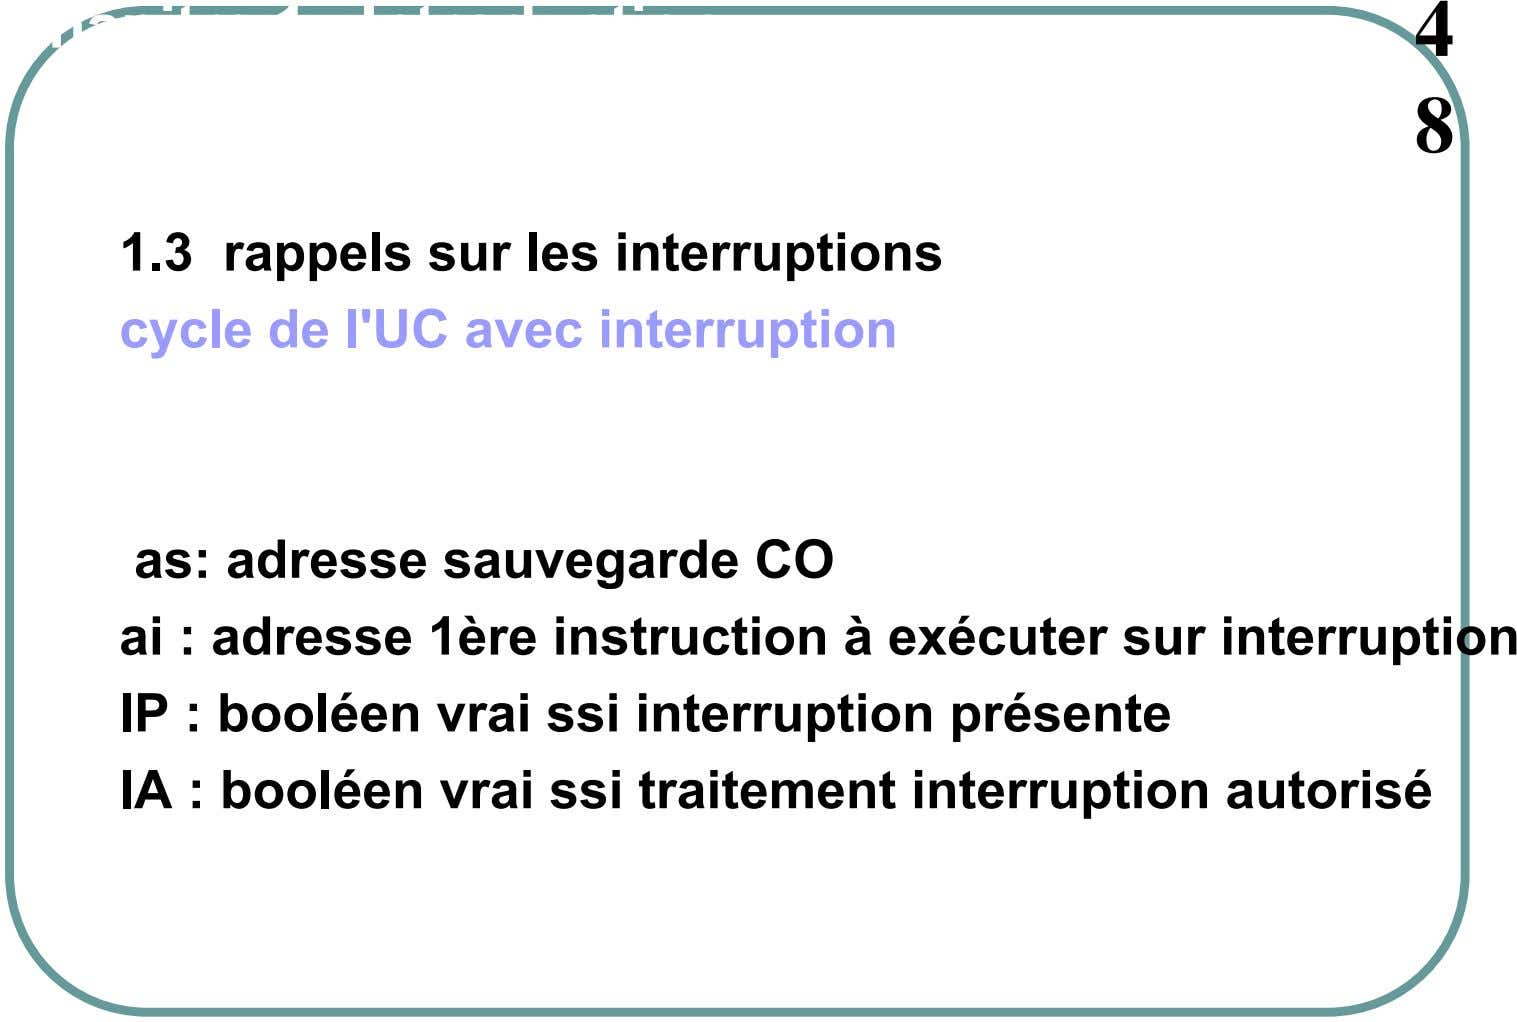 Chapitre 1. Introduction 4 8 1.3 rappels sur les interruptions cycle de l'UC avec interruption as: